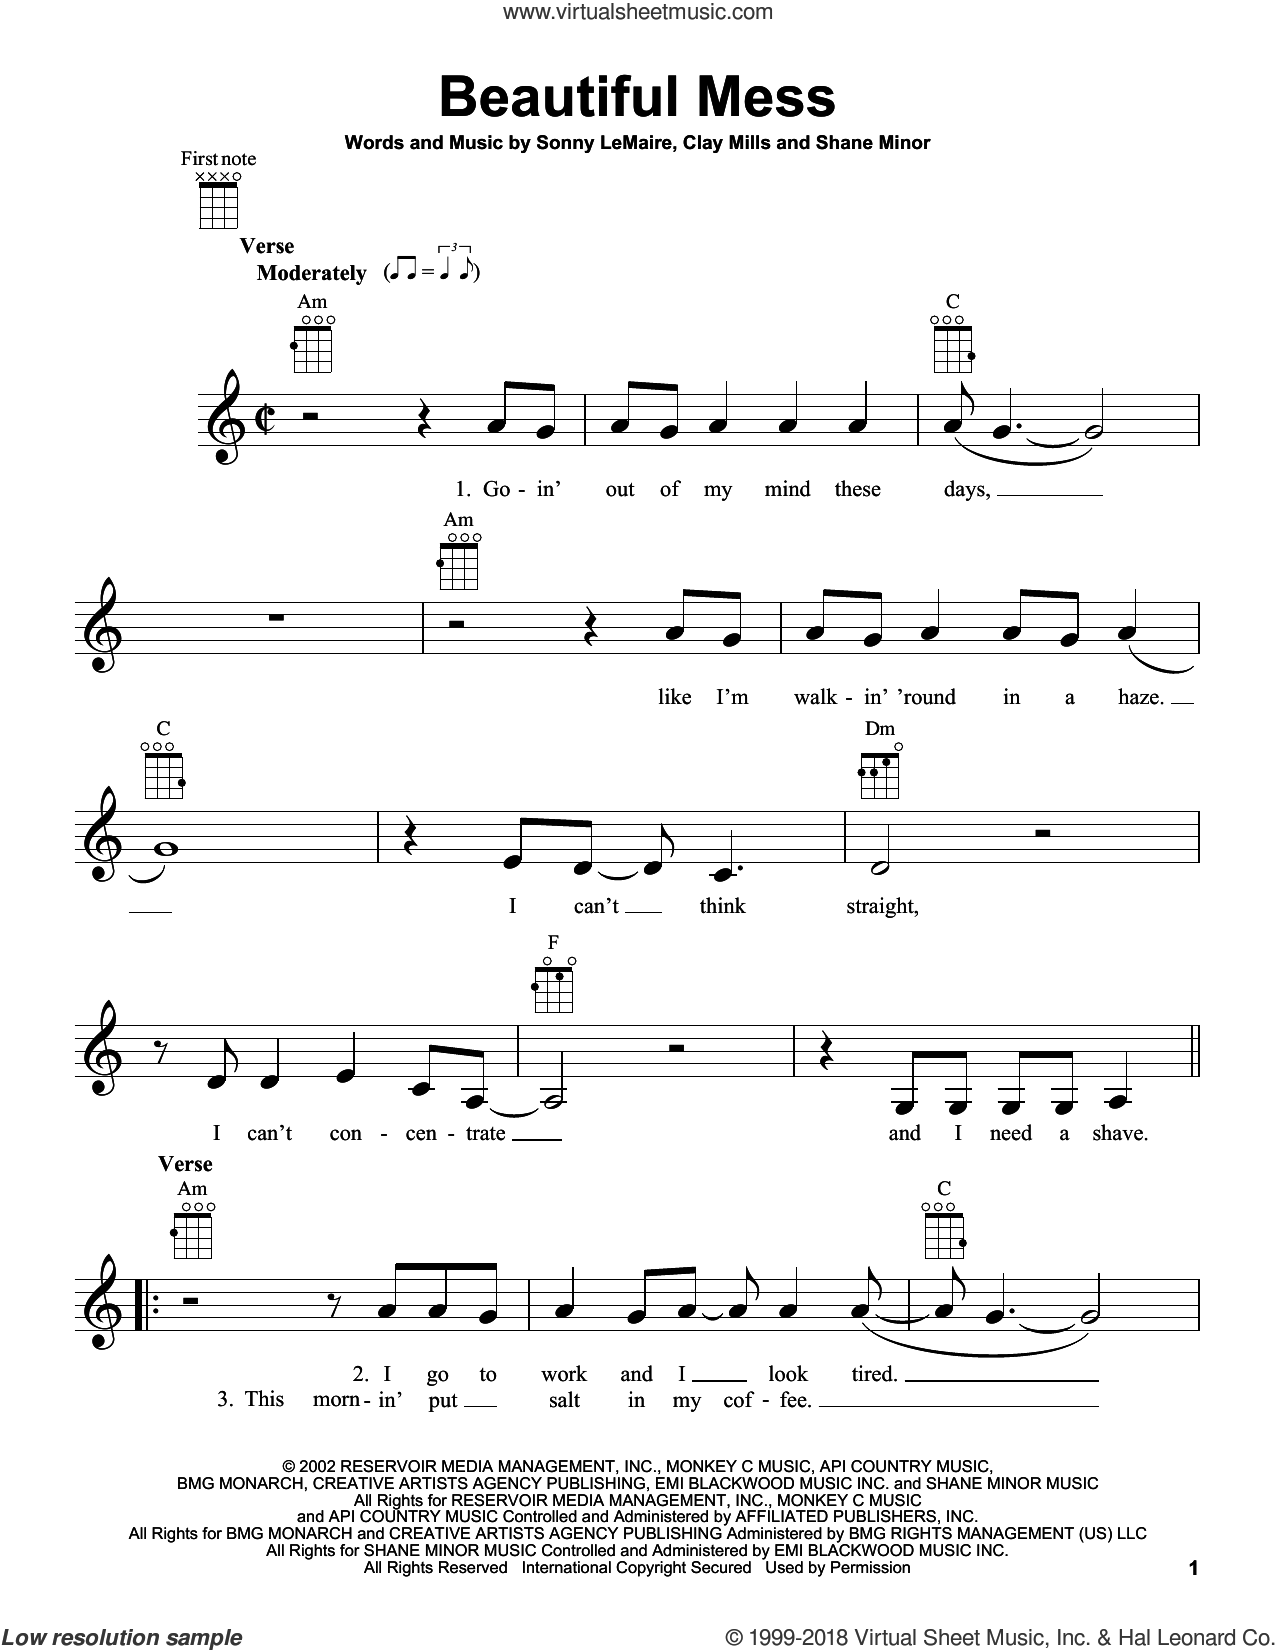 Beautiful Mess sheet music for ukulele by Diamond Rio, Clay Mills, Shane Minor and Sonny LeMaire, intermediate skill level